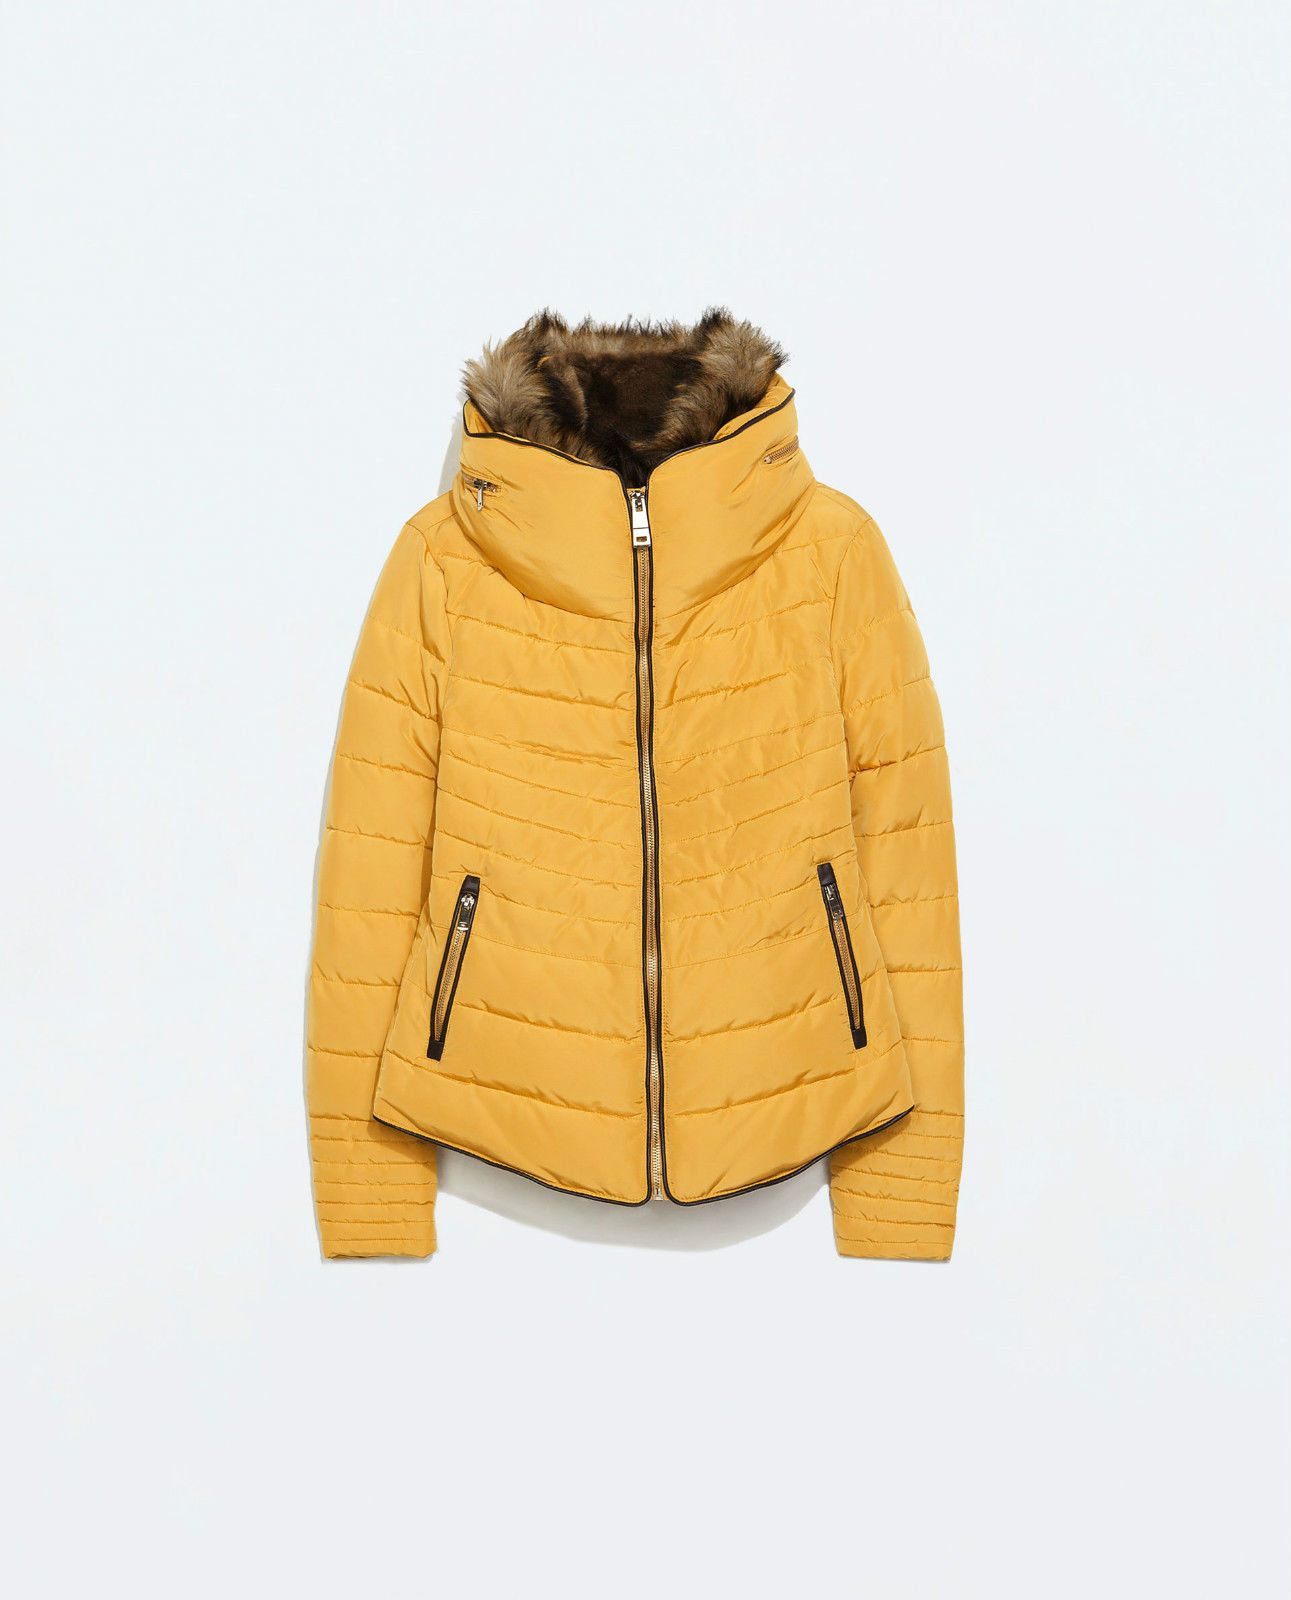 3b4b74026 ZARA MUSTARD YELLOW QUILTED PADDED WINTER JACKET FUR COLLAR SIZE L ...